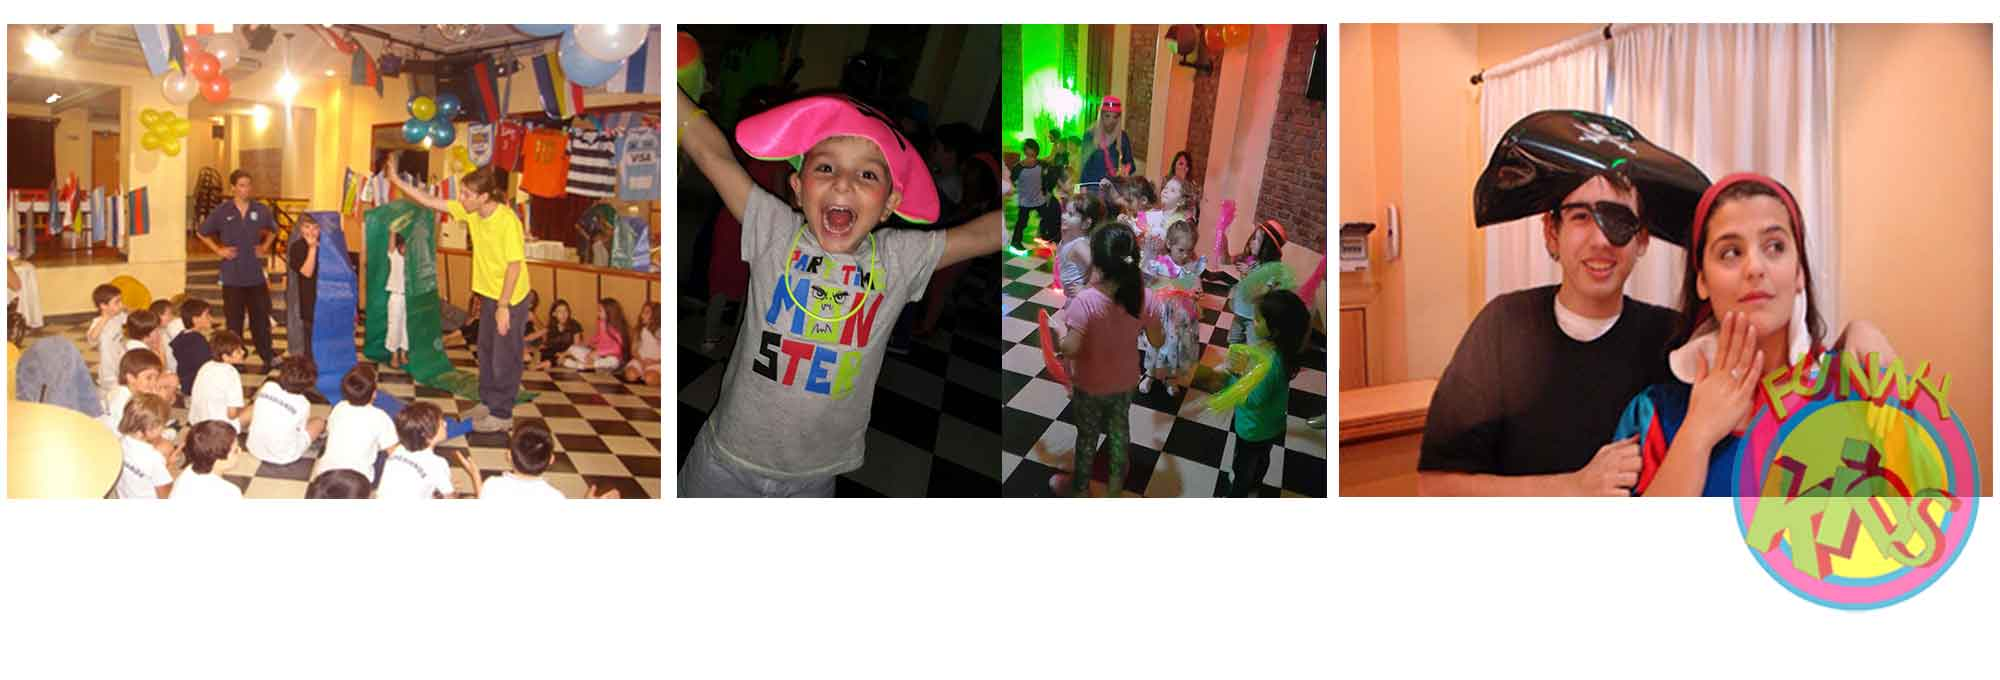 FUNNY KIDS...PARA QUE TU EVENTO SEA INOLVIDABLE..!